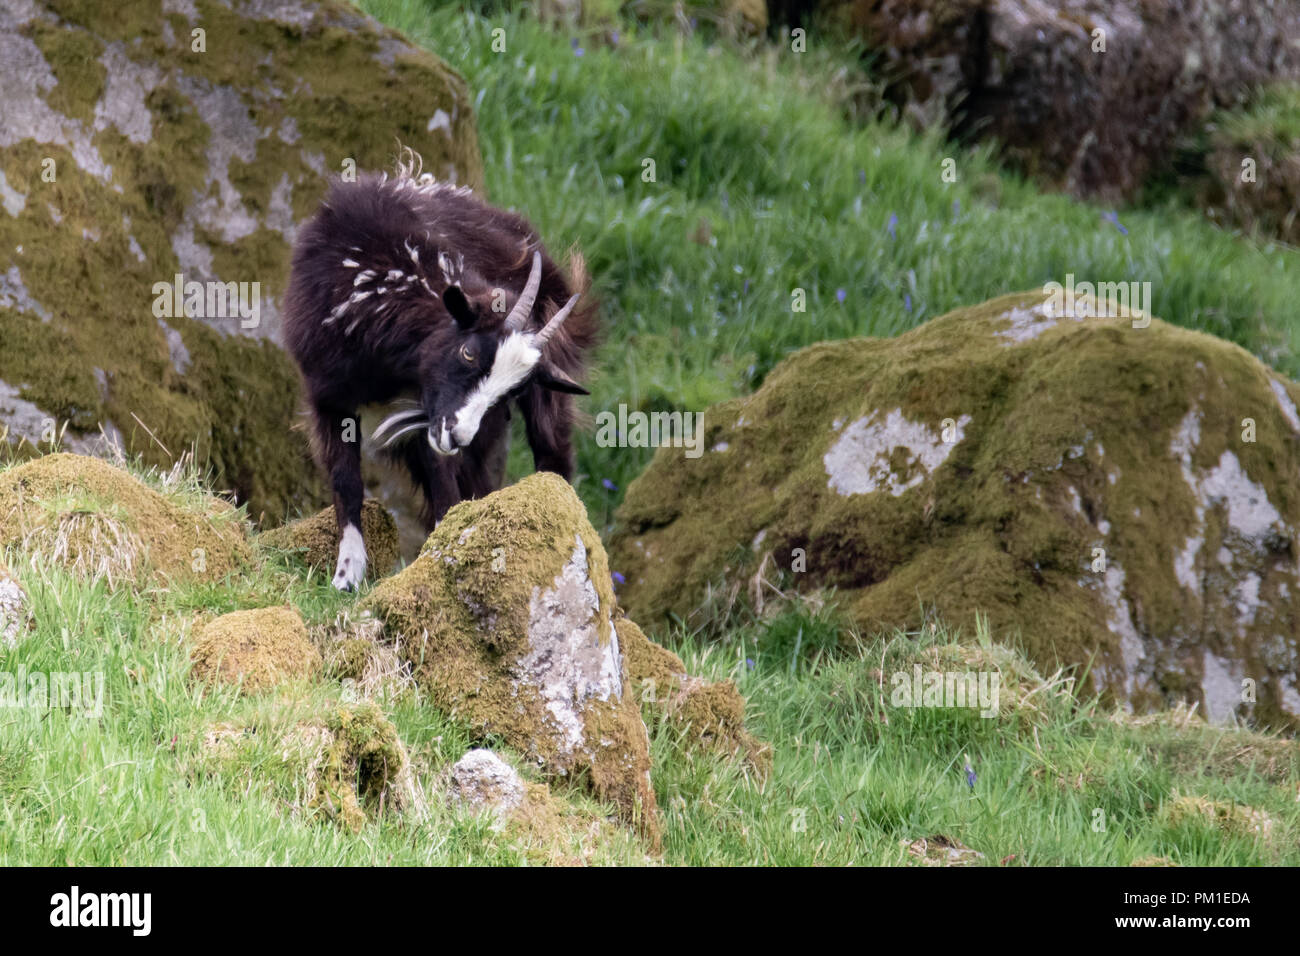 A wild goat climbs onto a moss covered rock in Southern Scotland. - Stock Image